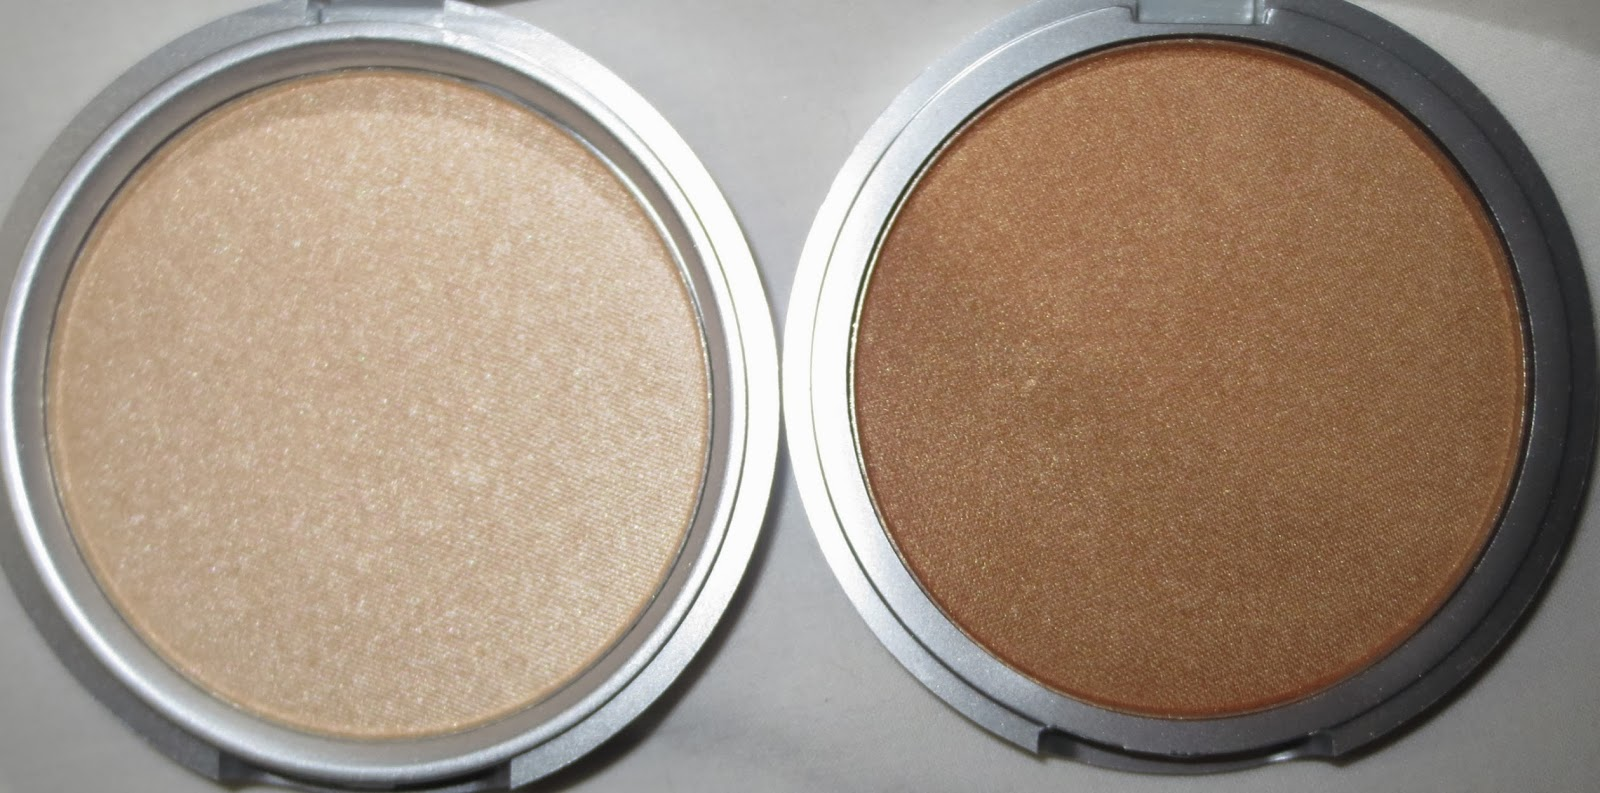 The Balm Mary-Lou Manizer & Betty-Lou Manizer